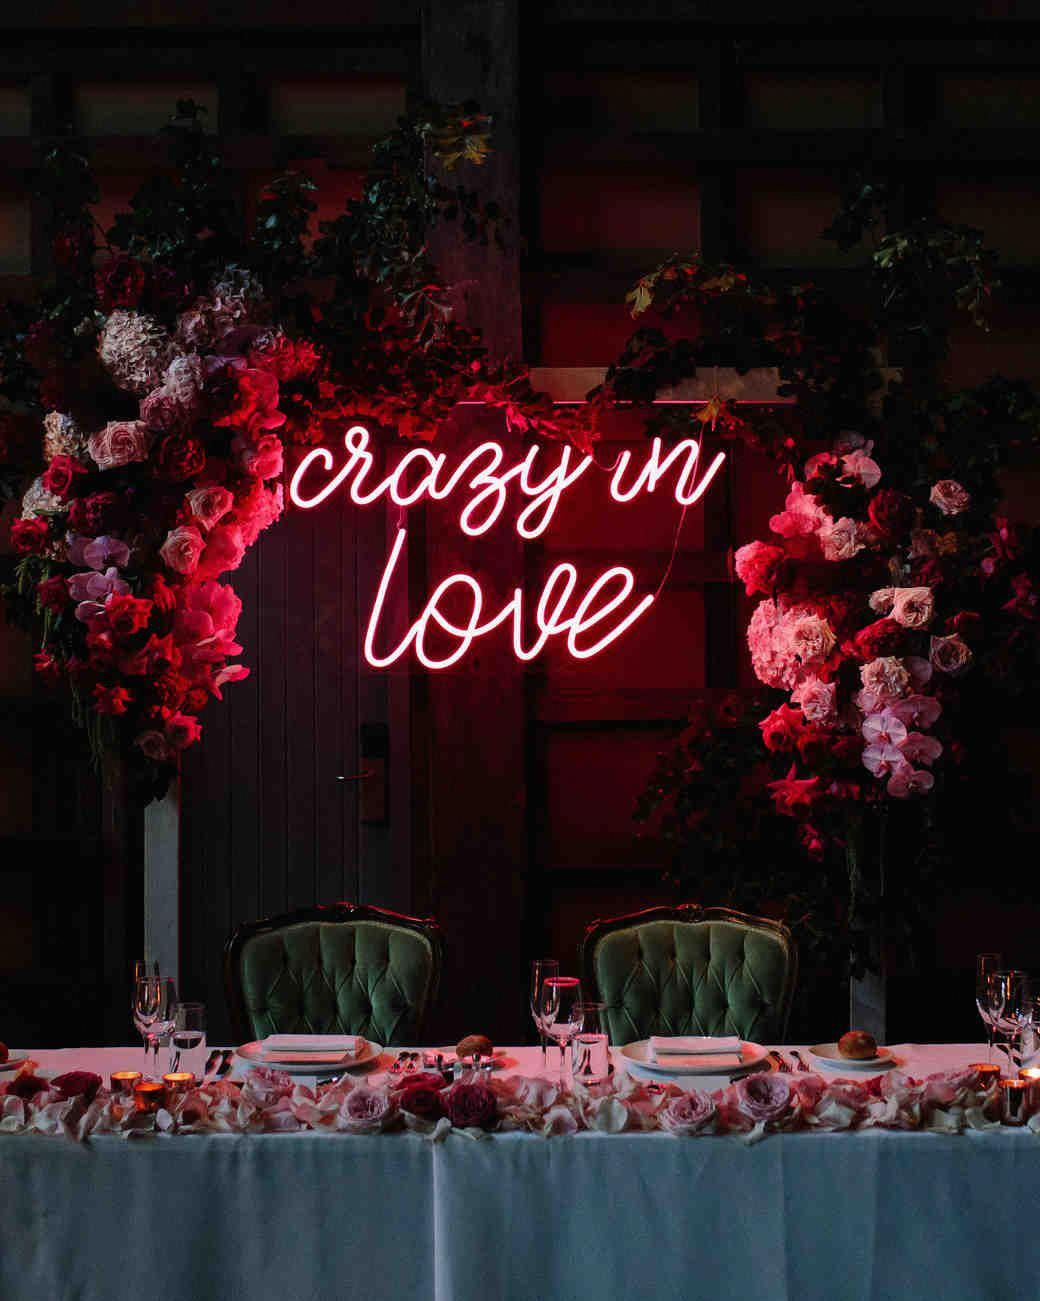 20 Ways to Use Neon Signs to Light Up Your Wedding in 2020